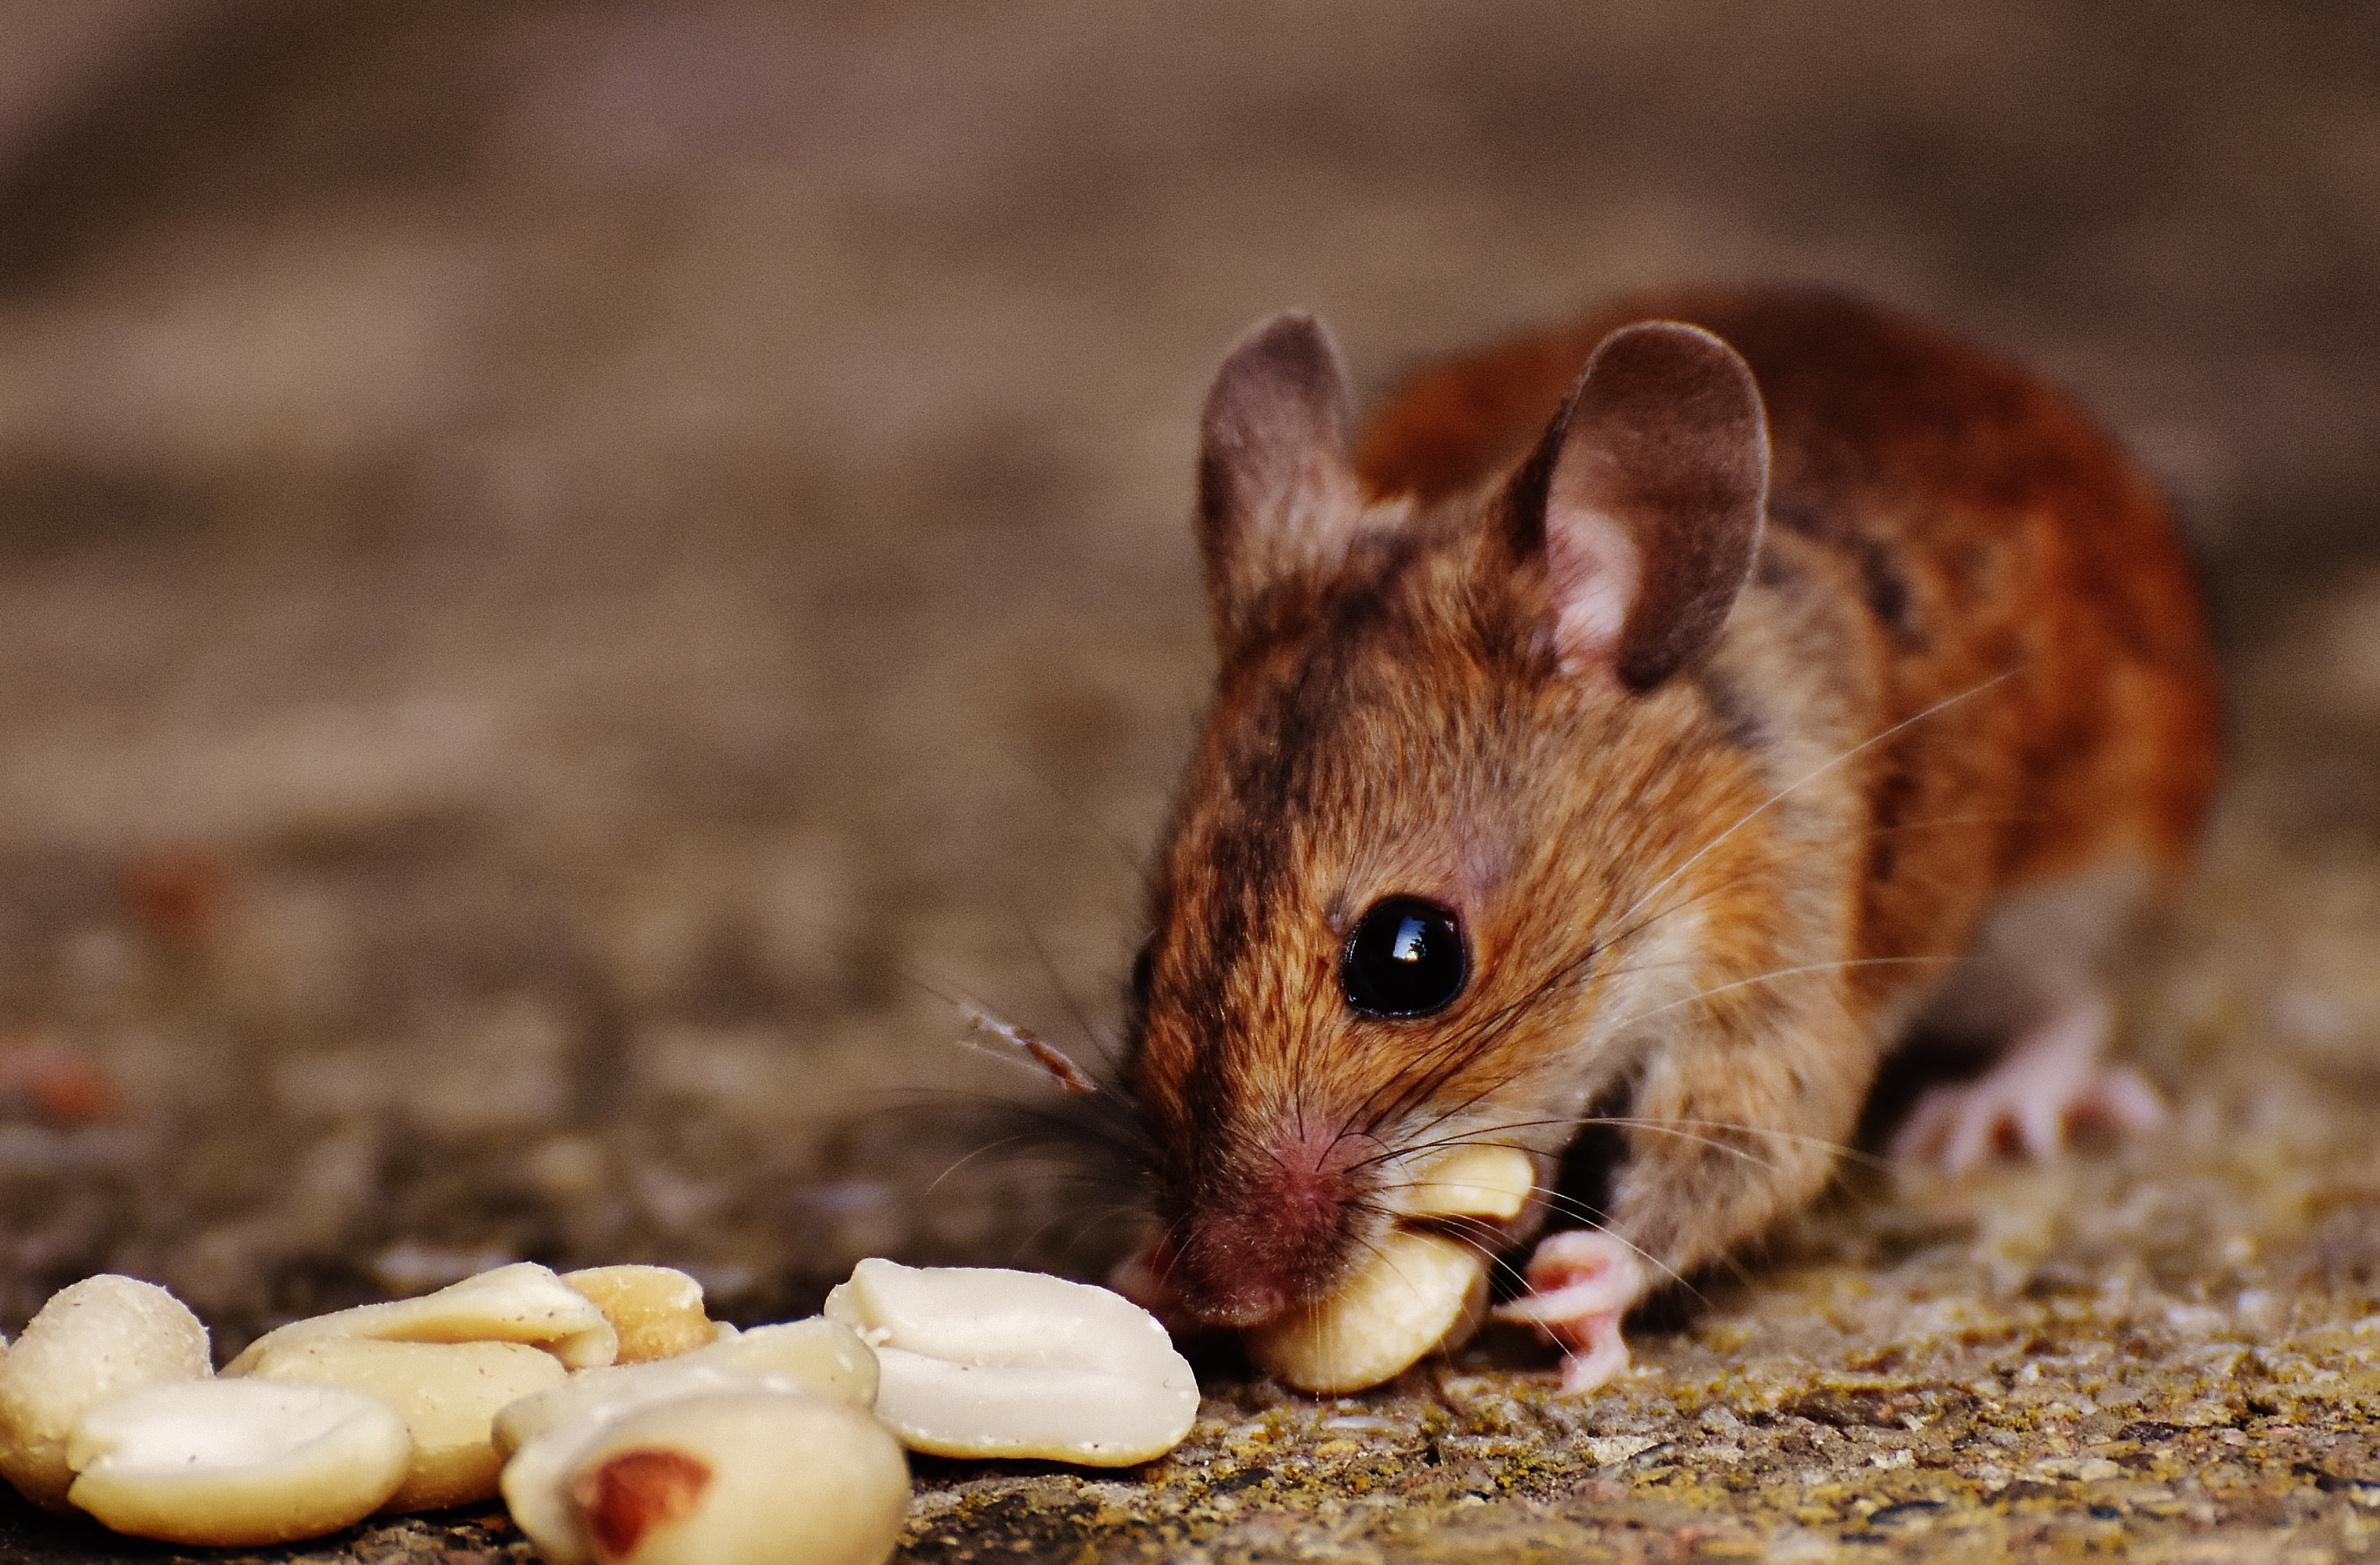 93142 download wallpaper Animals, European Mouse, Mouse, Rodent, Nuts, Food screensavers and pictures for free